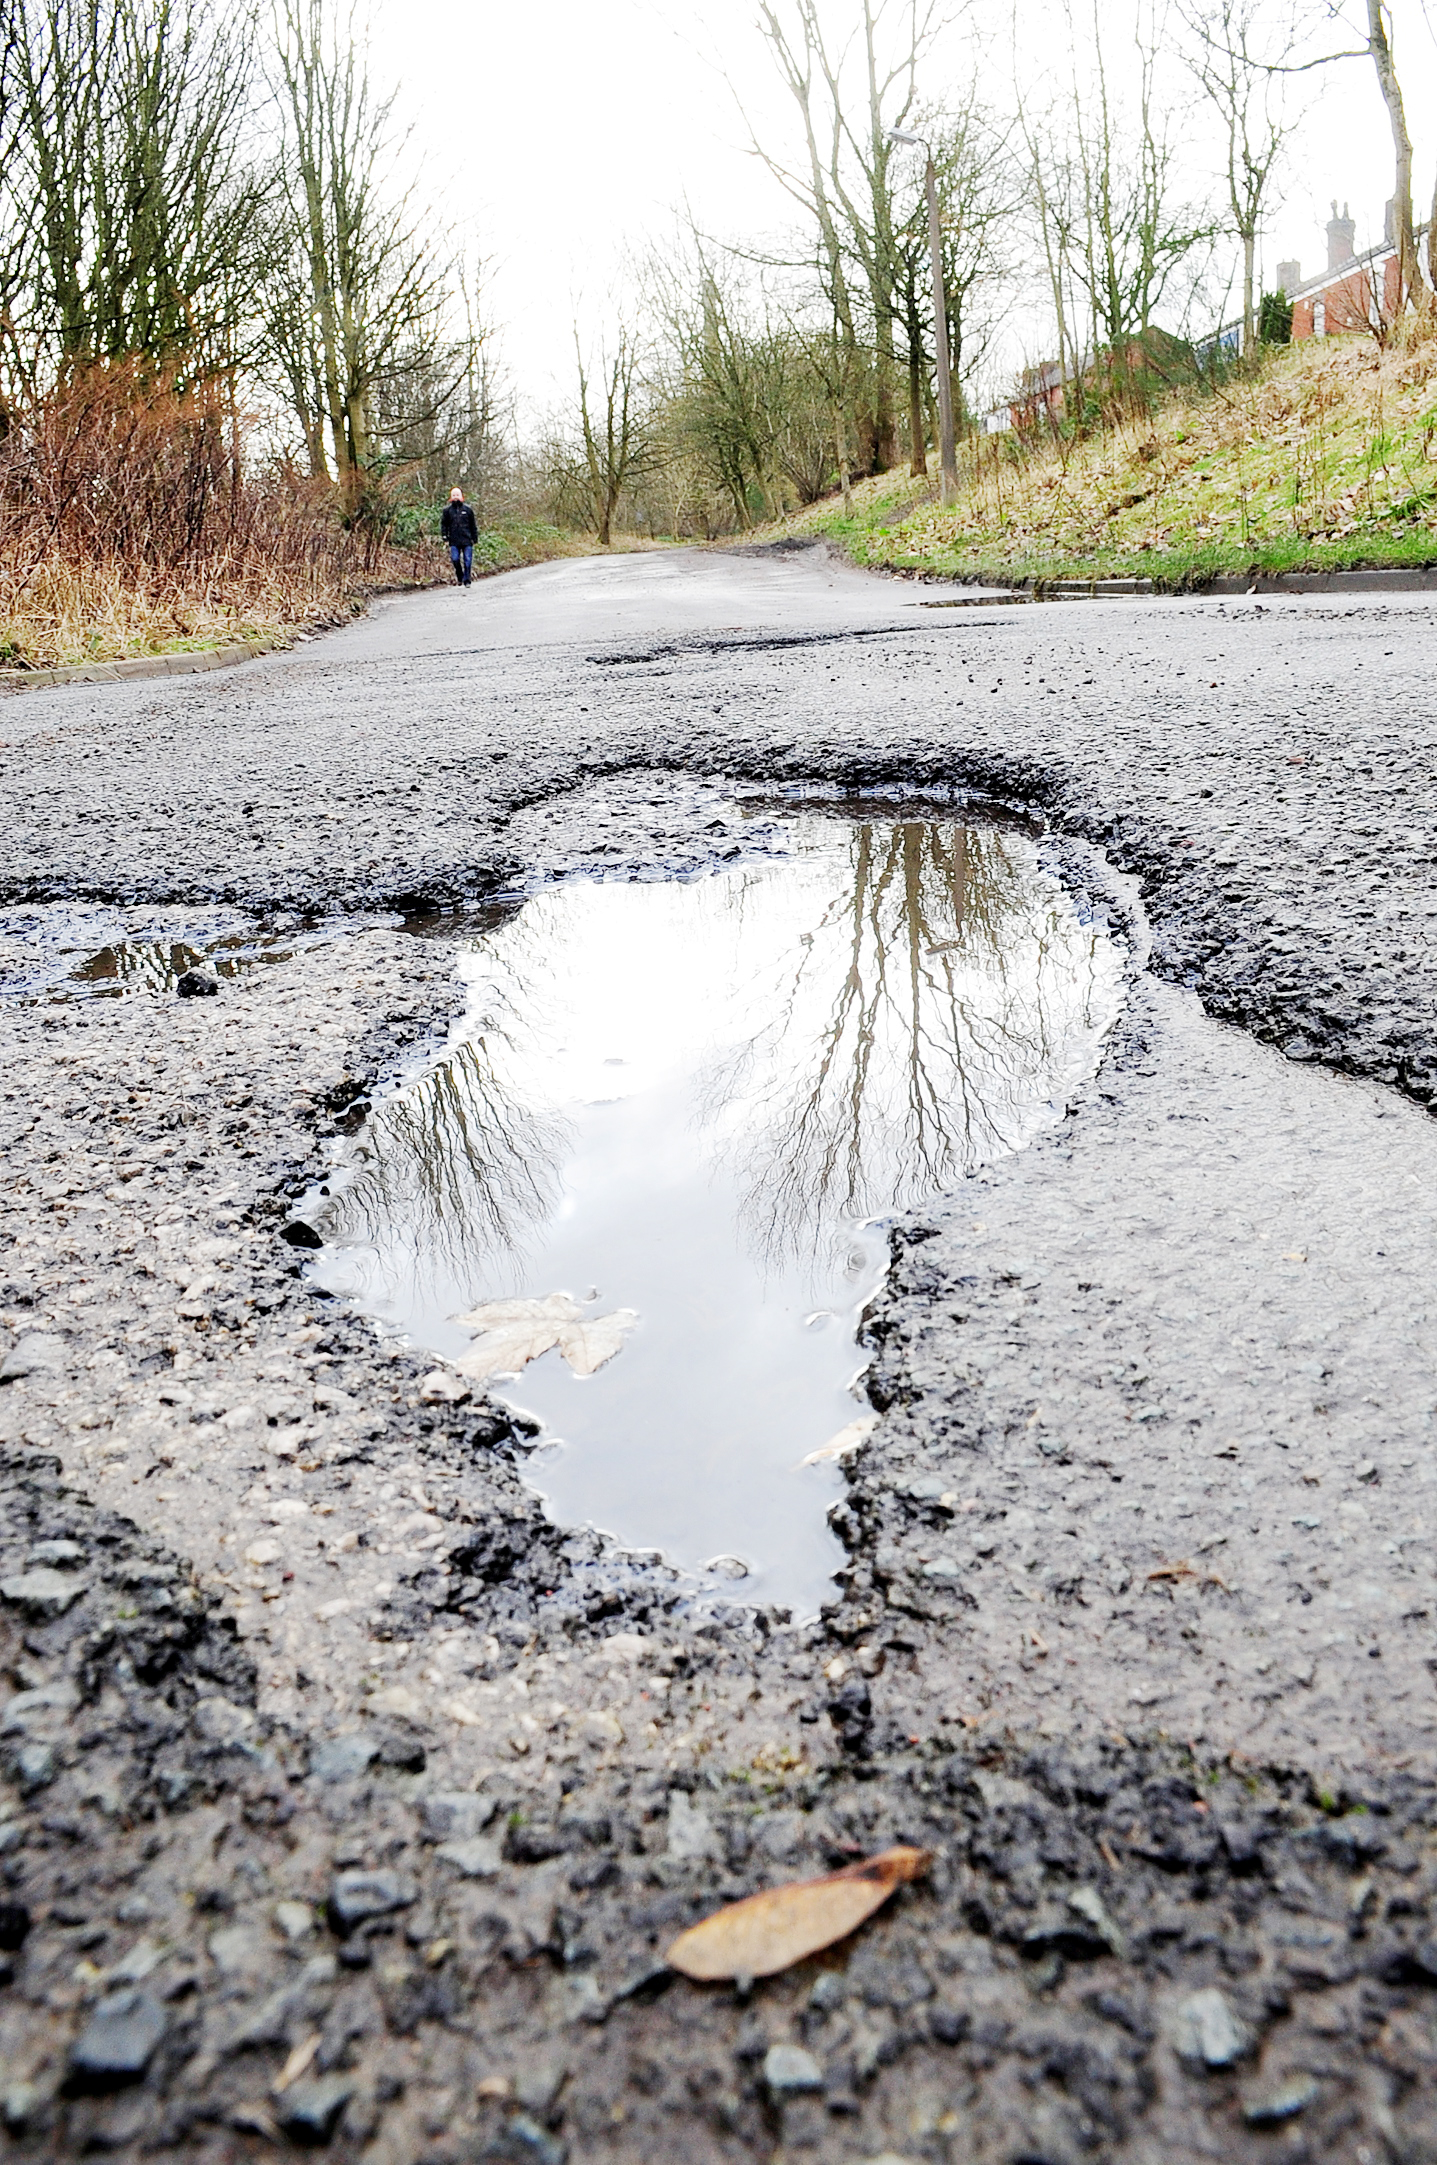 The council says it needs more money to sort out pot holes.